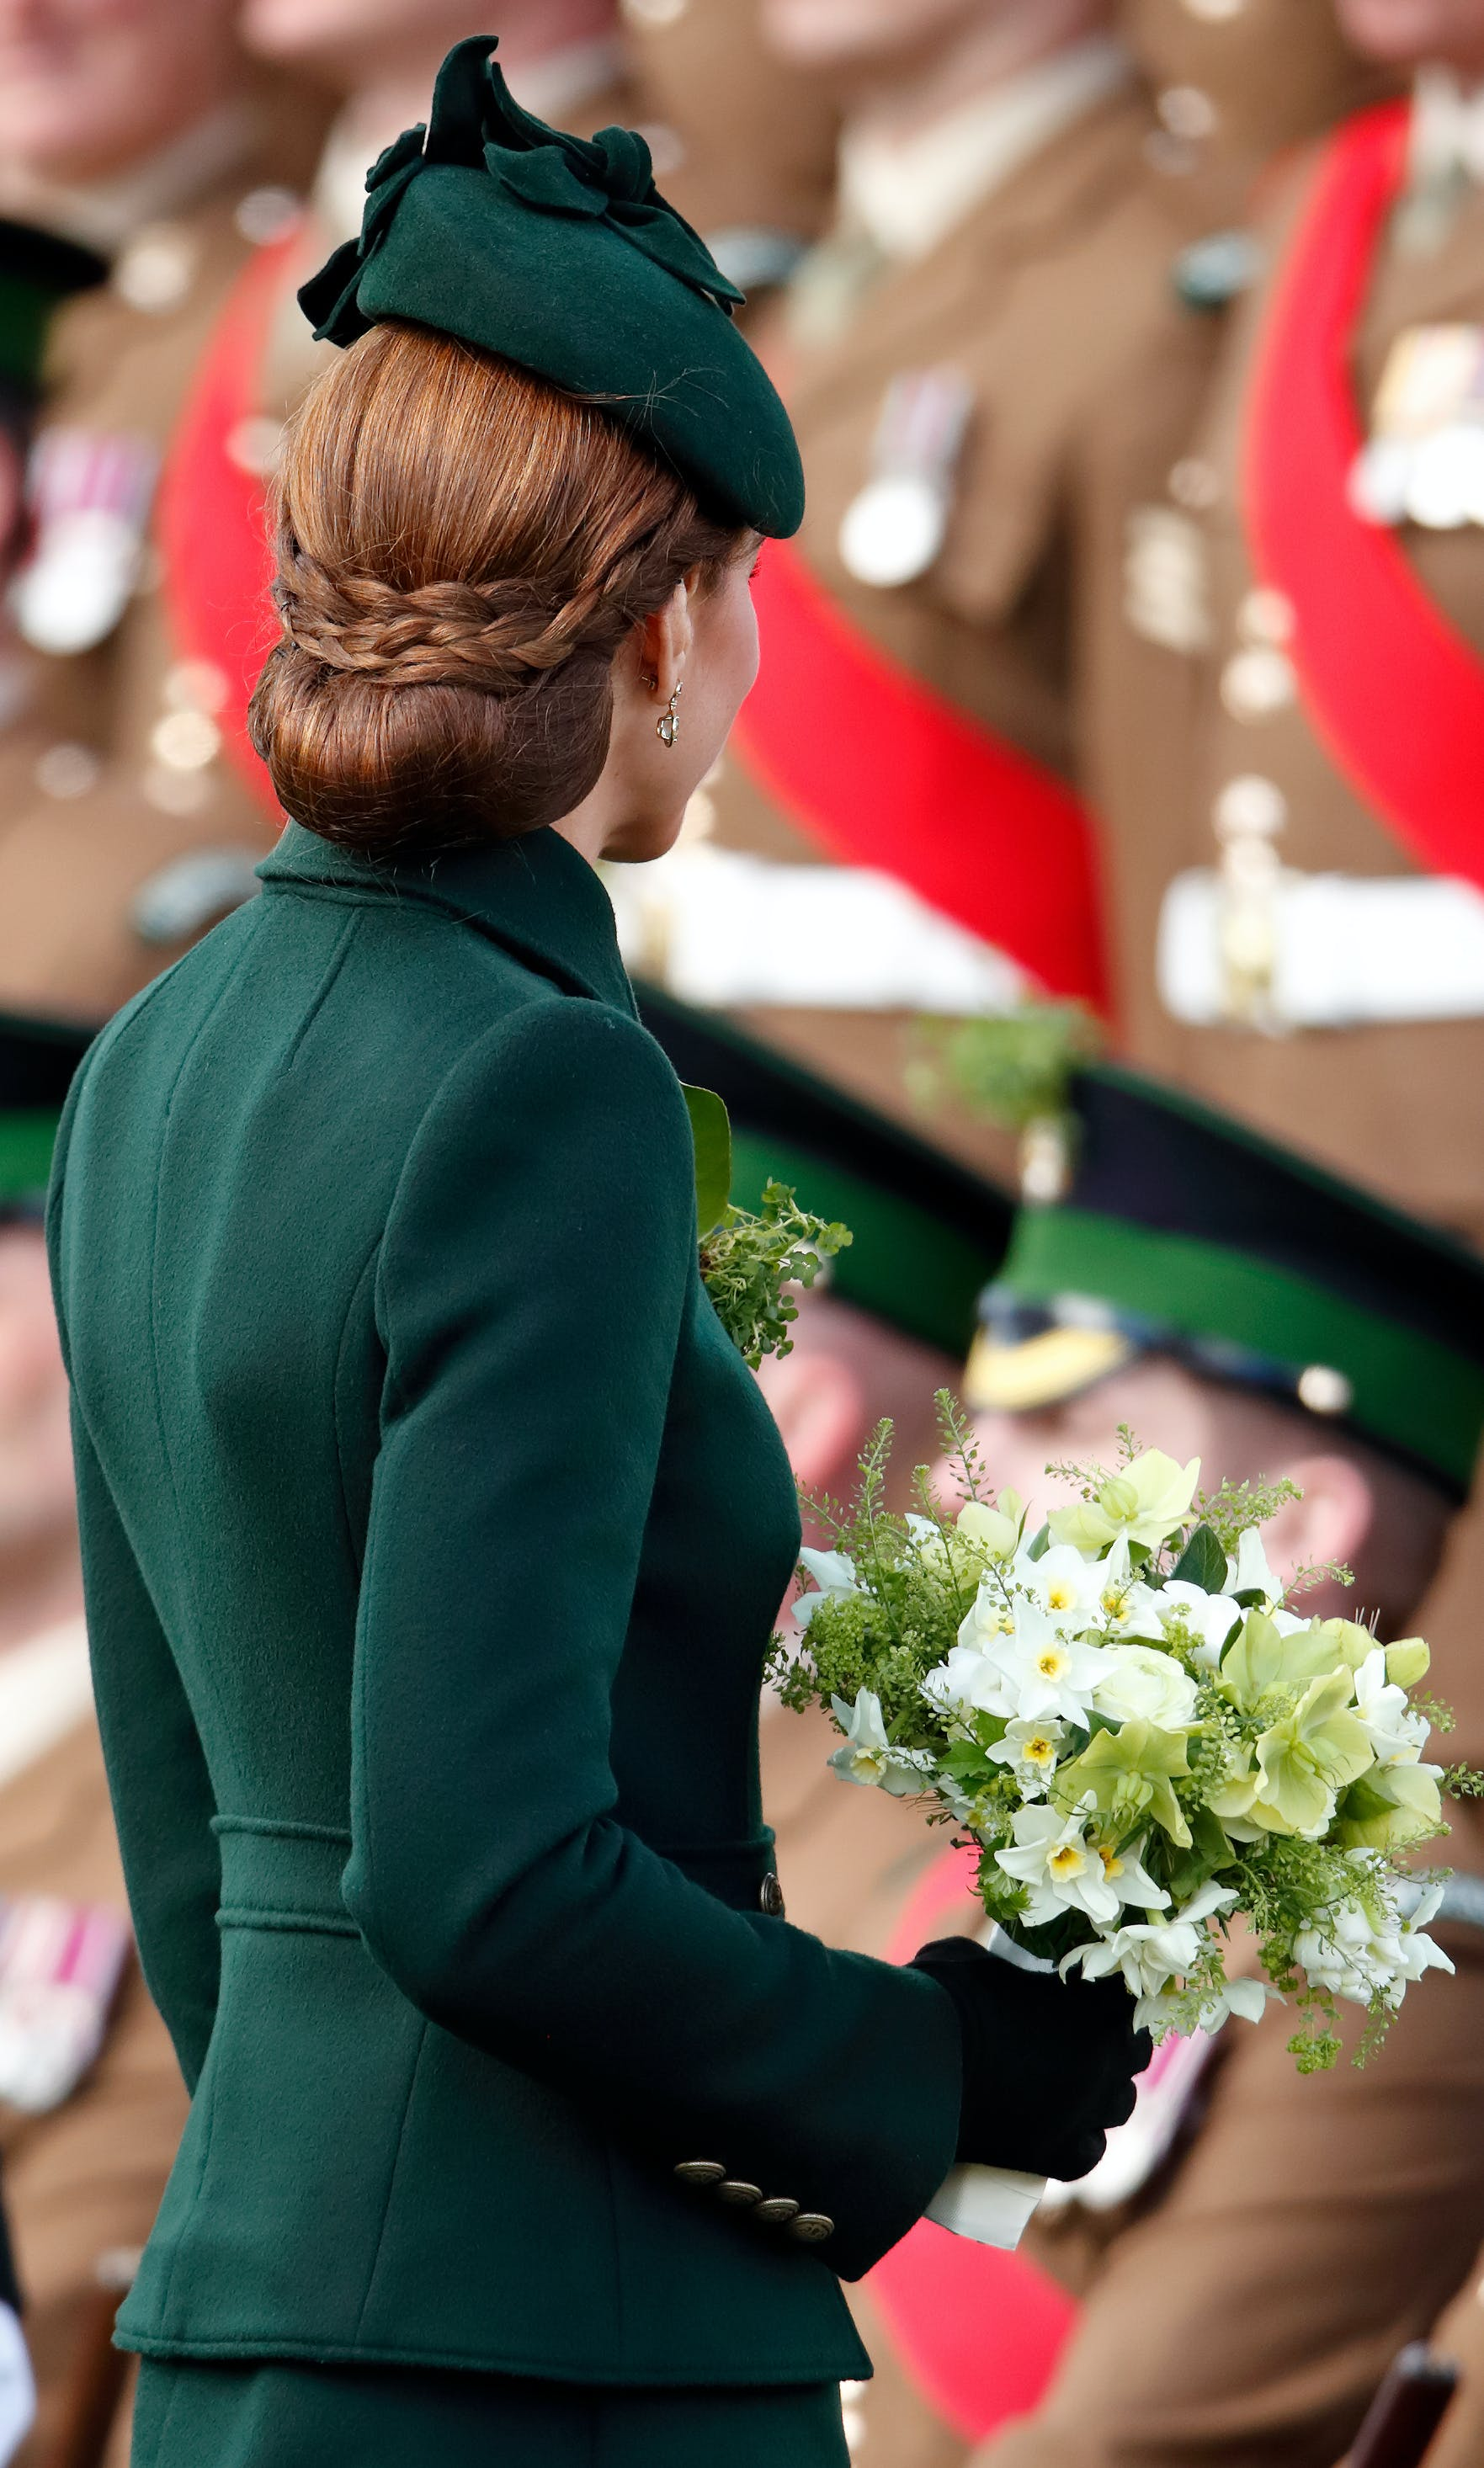 Kate Middleton's Braided Updo Was Definitely the Pot of Gold This St. Patrick's Day